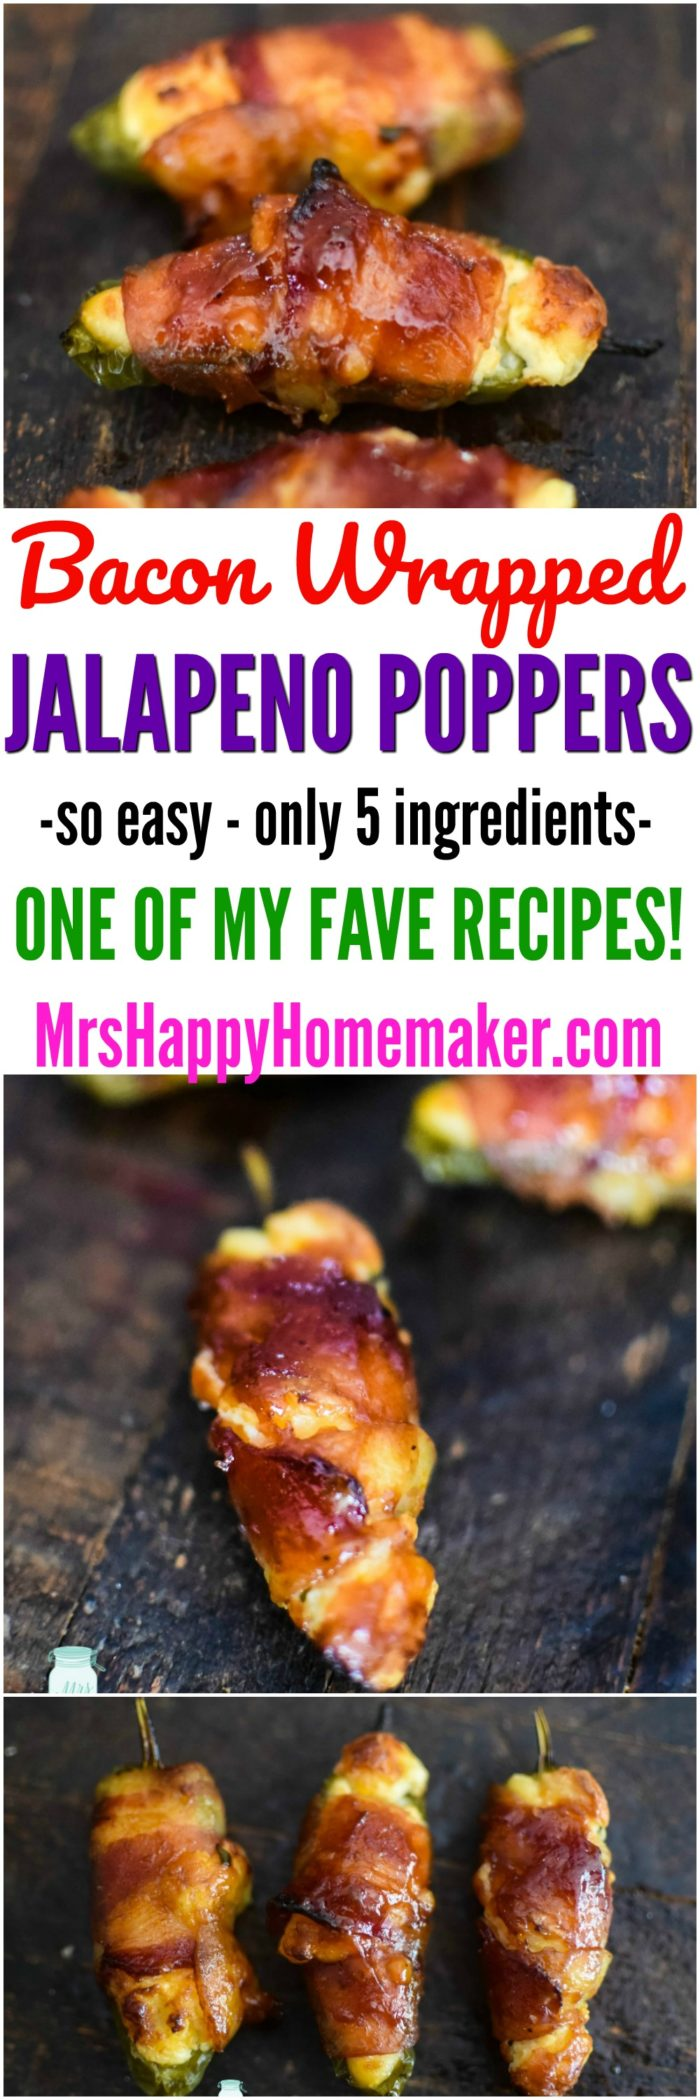 Bacon Wrapped Jalapeno Poppers - only 5 ingredients and they're so delicious! | MrsHappyHomemaker.com